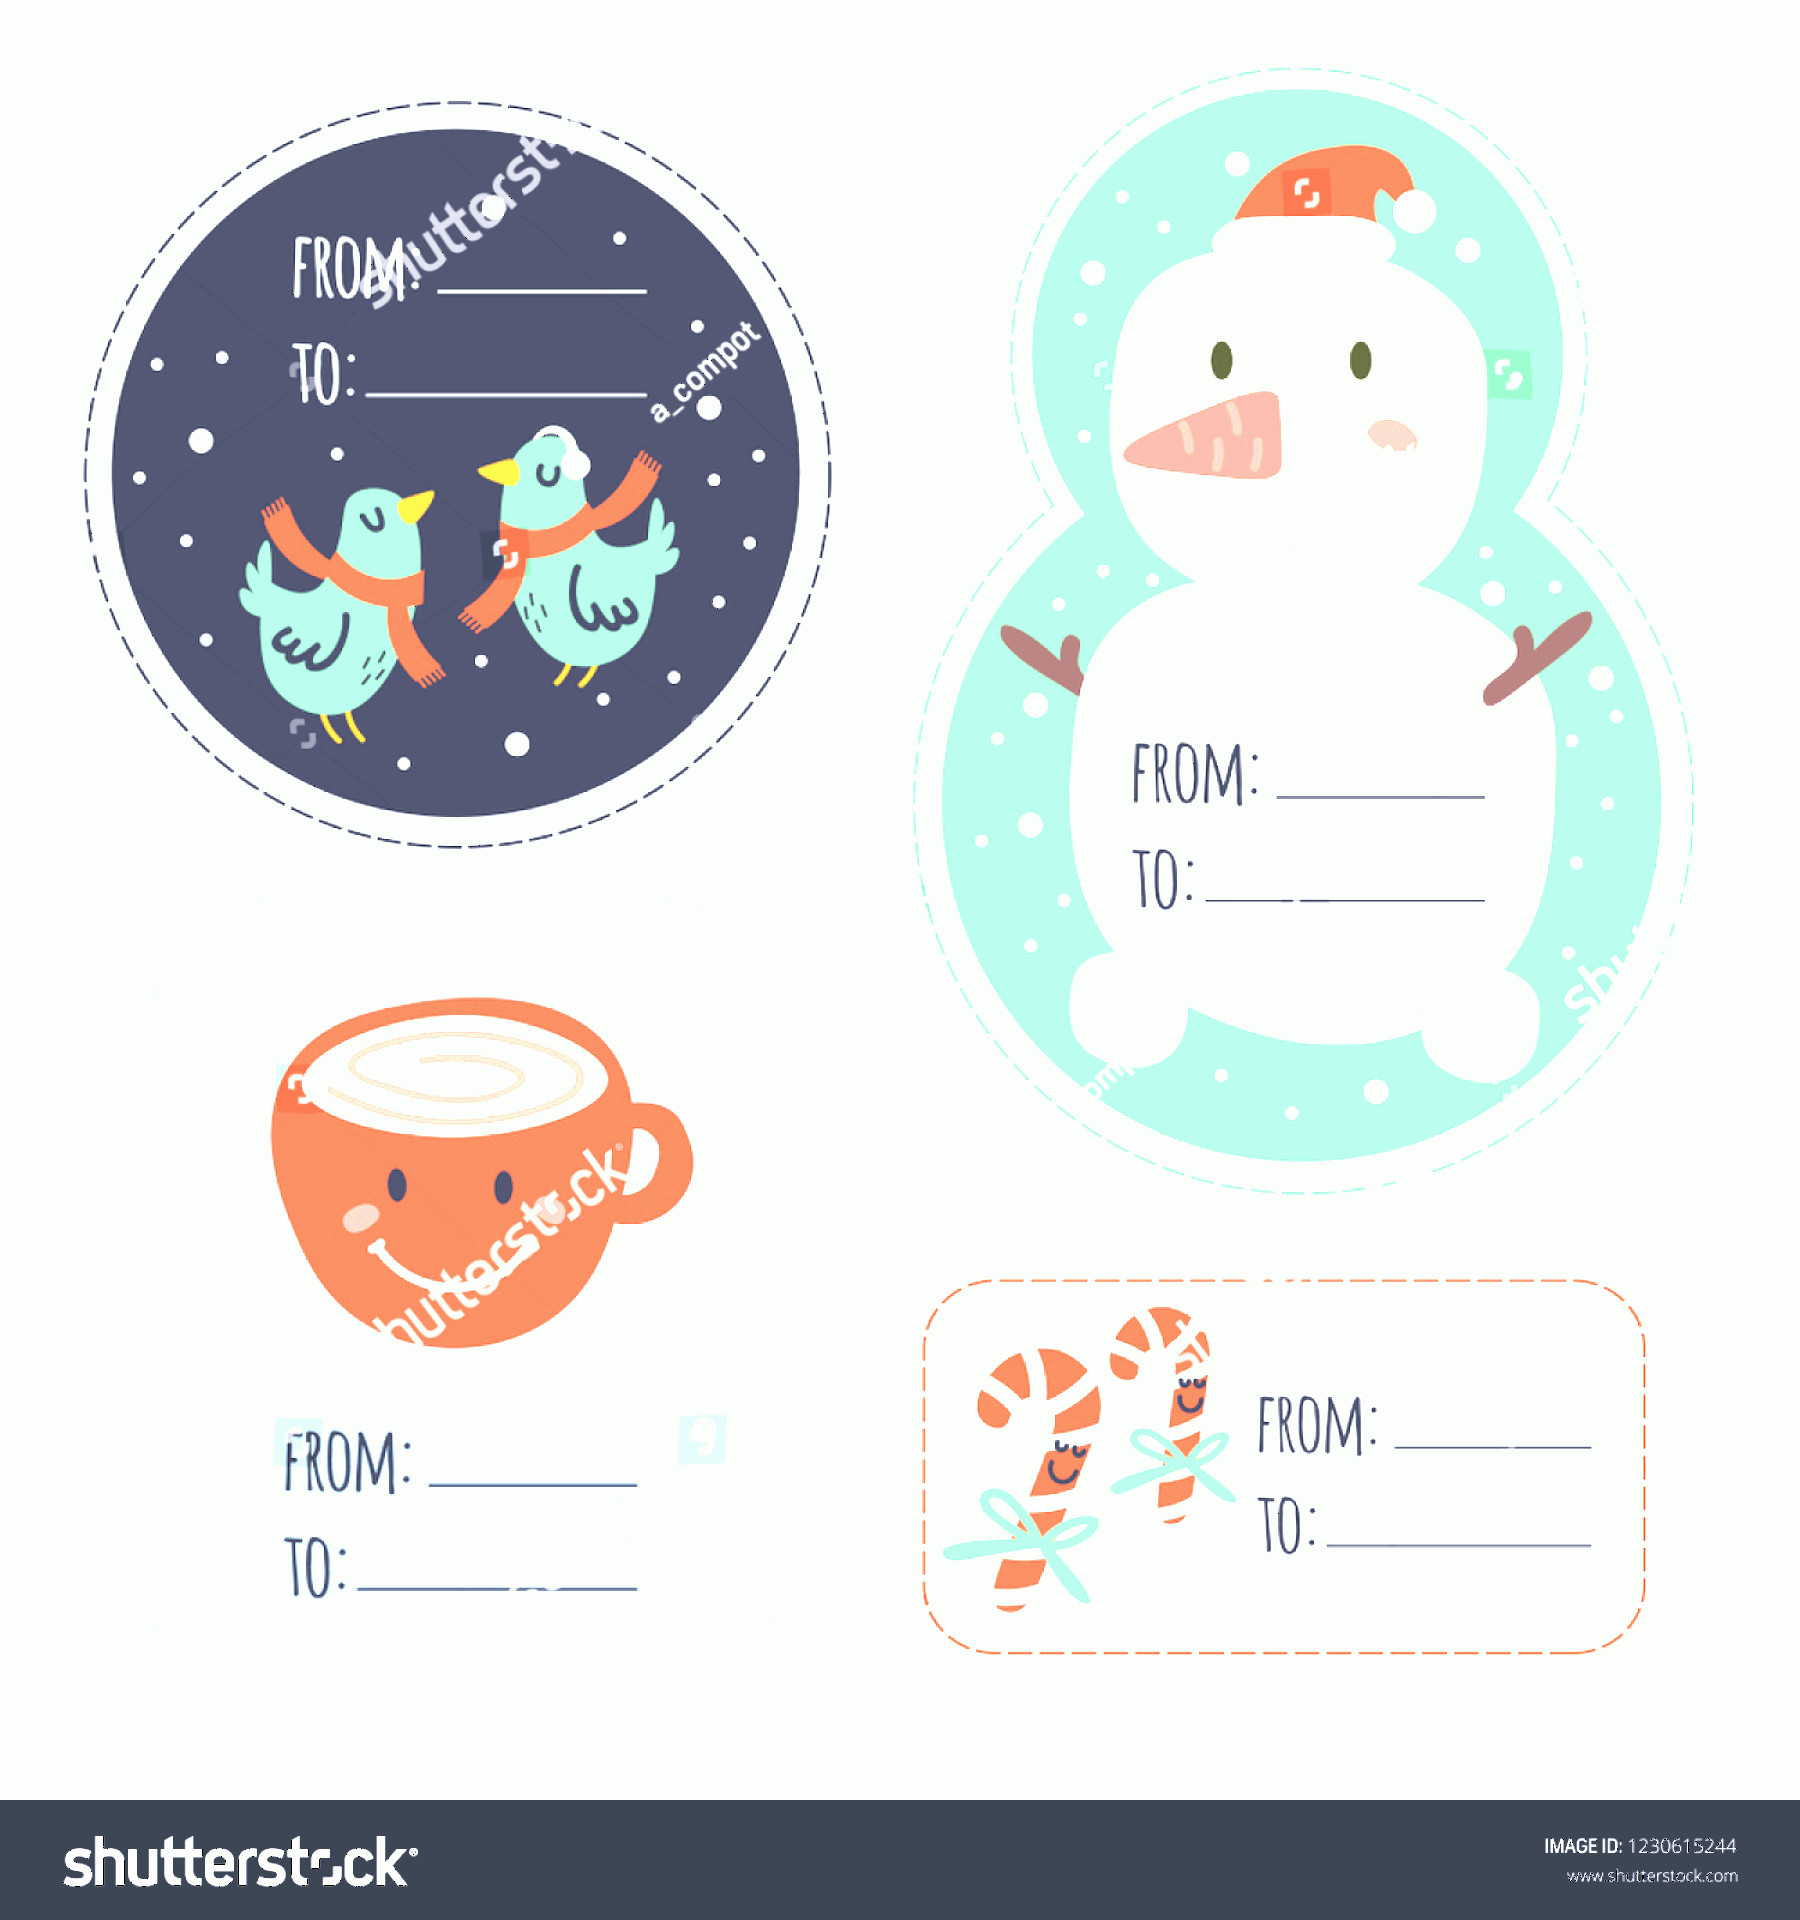 Vector Christmas Toppers: Christmas Stickers Funny Elements Snowflake Snowman